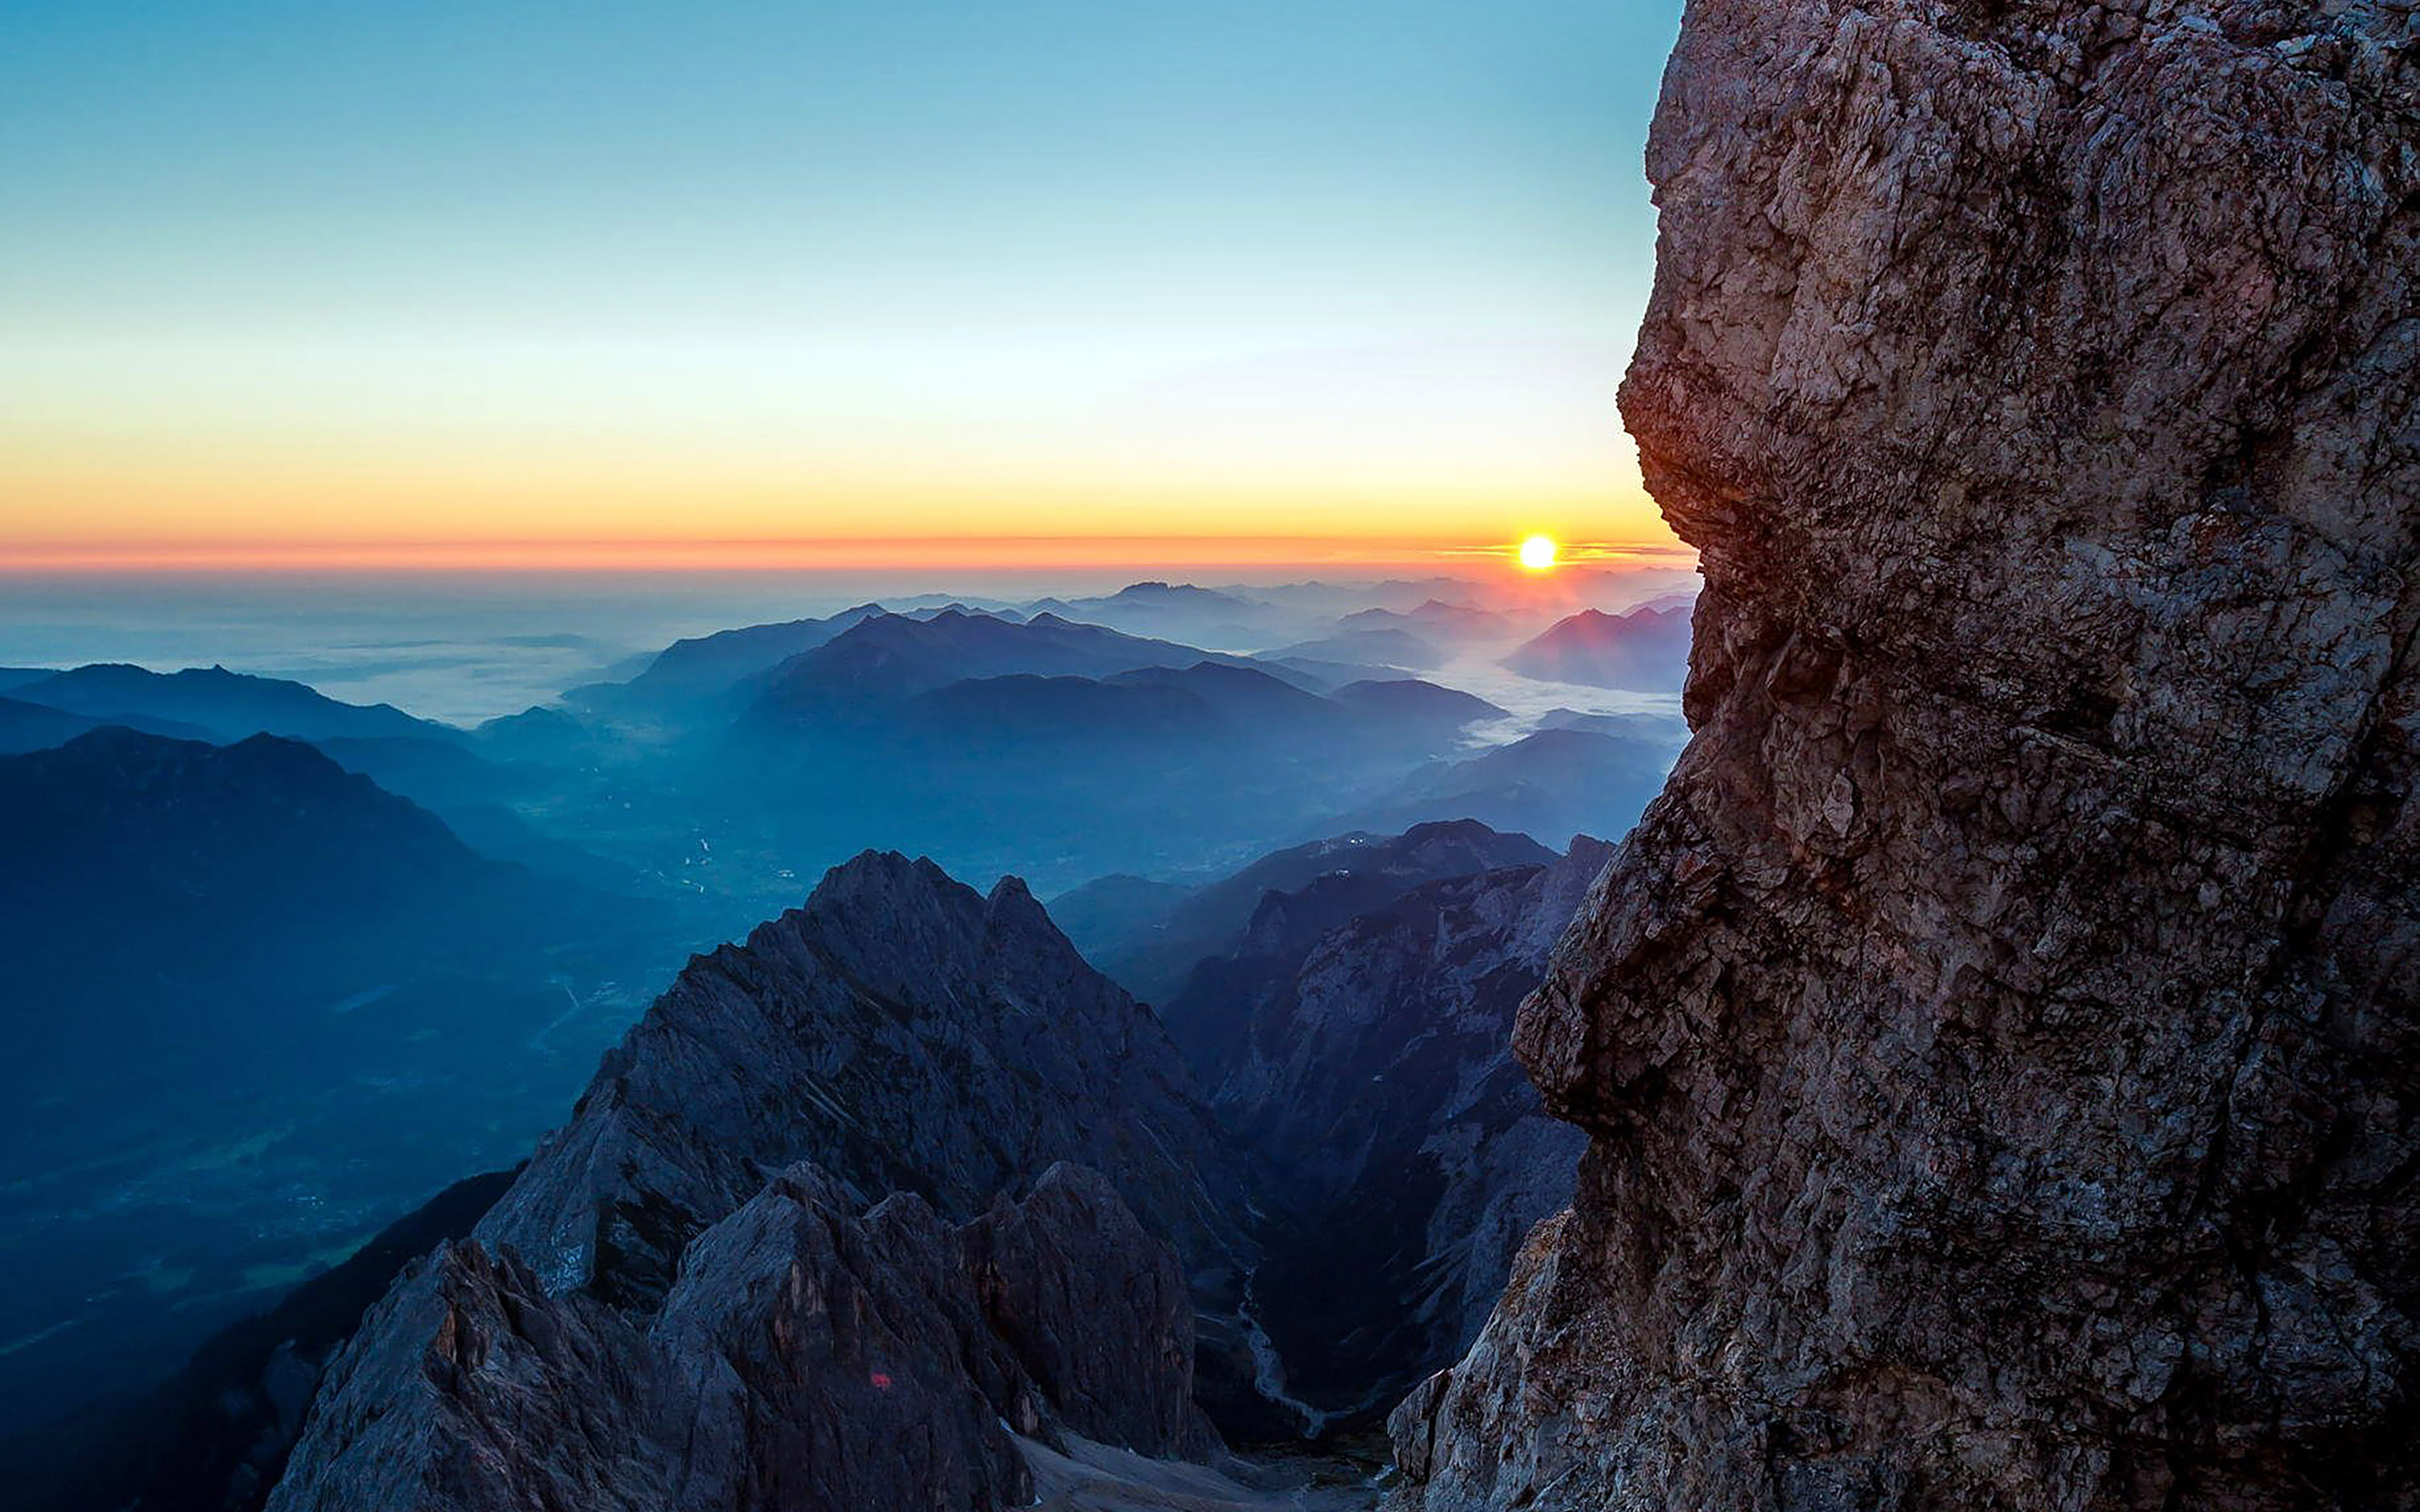 Ipad Hd Wallpapers 1080p Ma82 Dawn At Mars Mountain Nature Papers Co